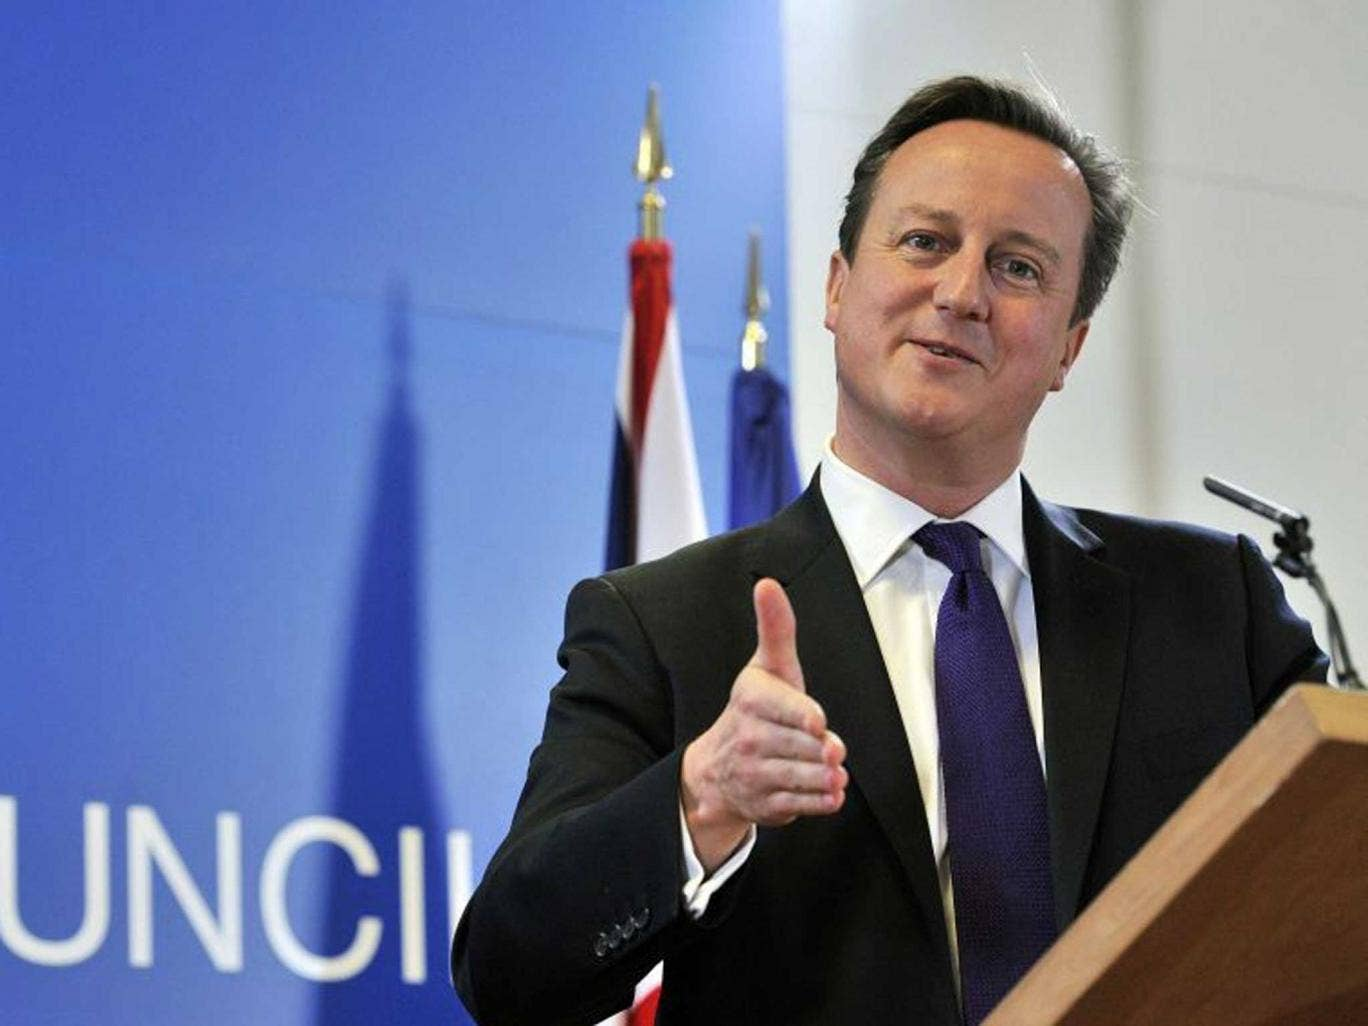 The improving economy may win David Cameron and the Conservatives the next election